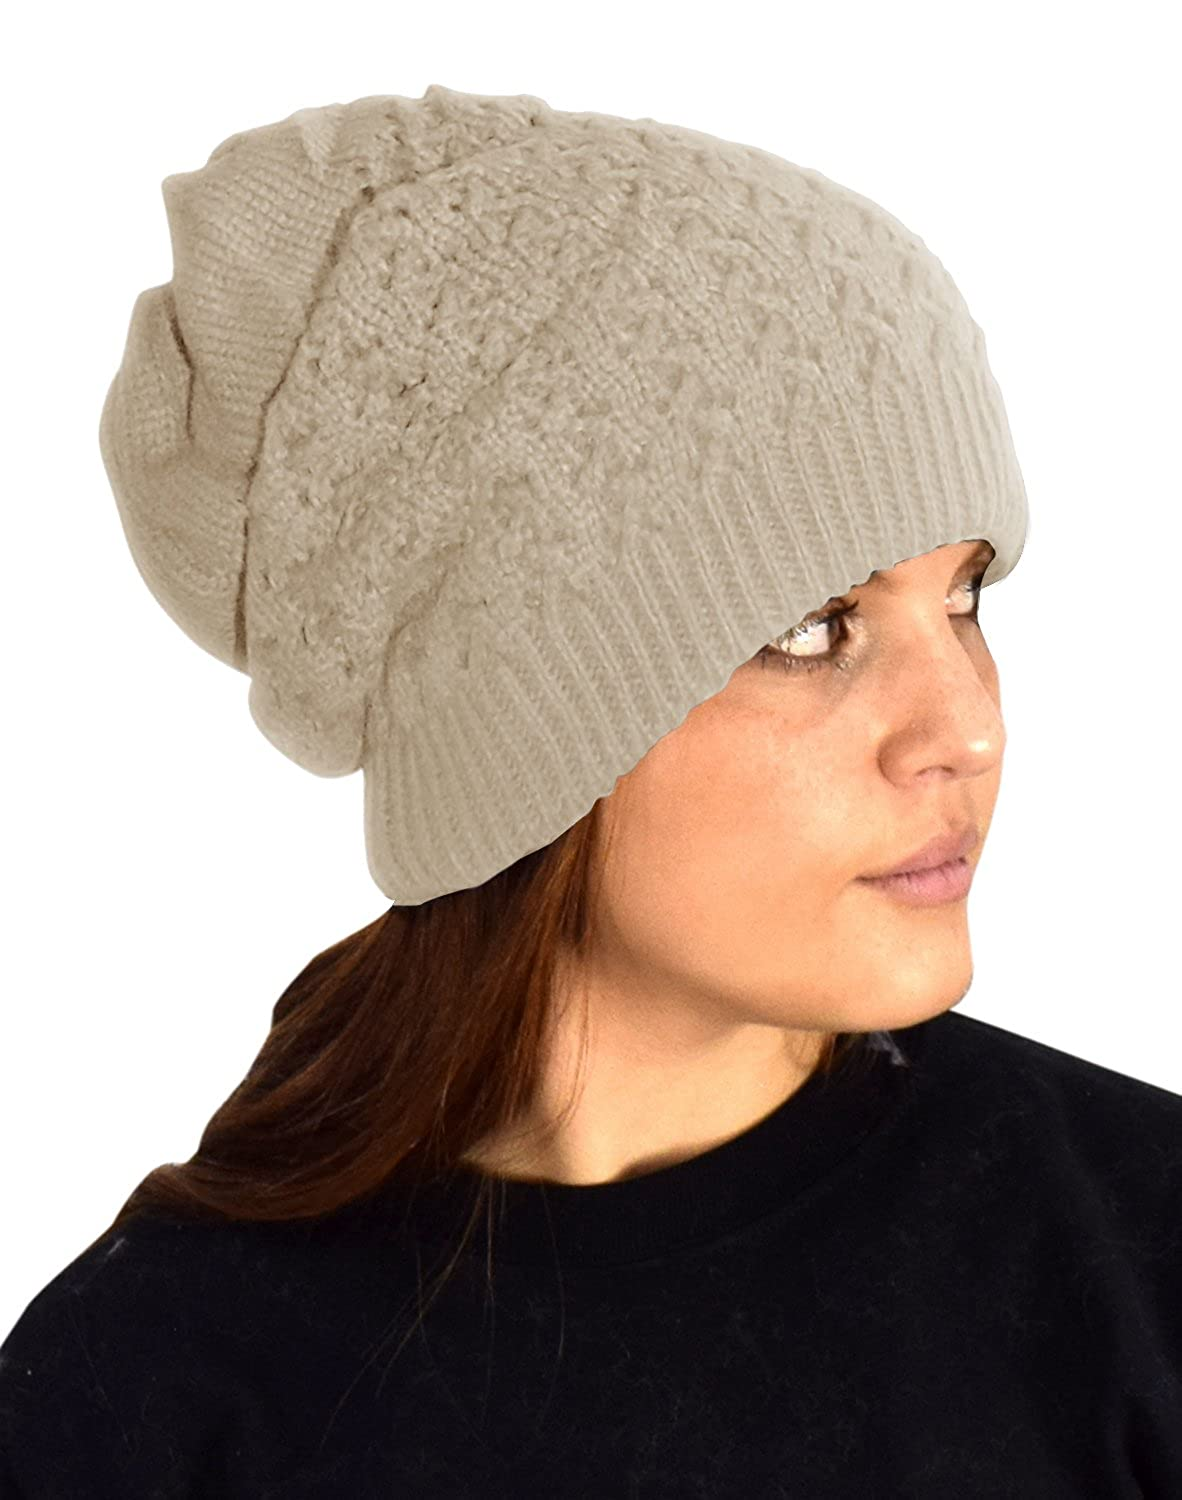 Peach Couture Womens Knit Thick Warm Boho Slouch Beanie Ski Hat Cap Snood  (Beige) at Amazon Women s Clothing store  3c1f83de887